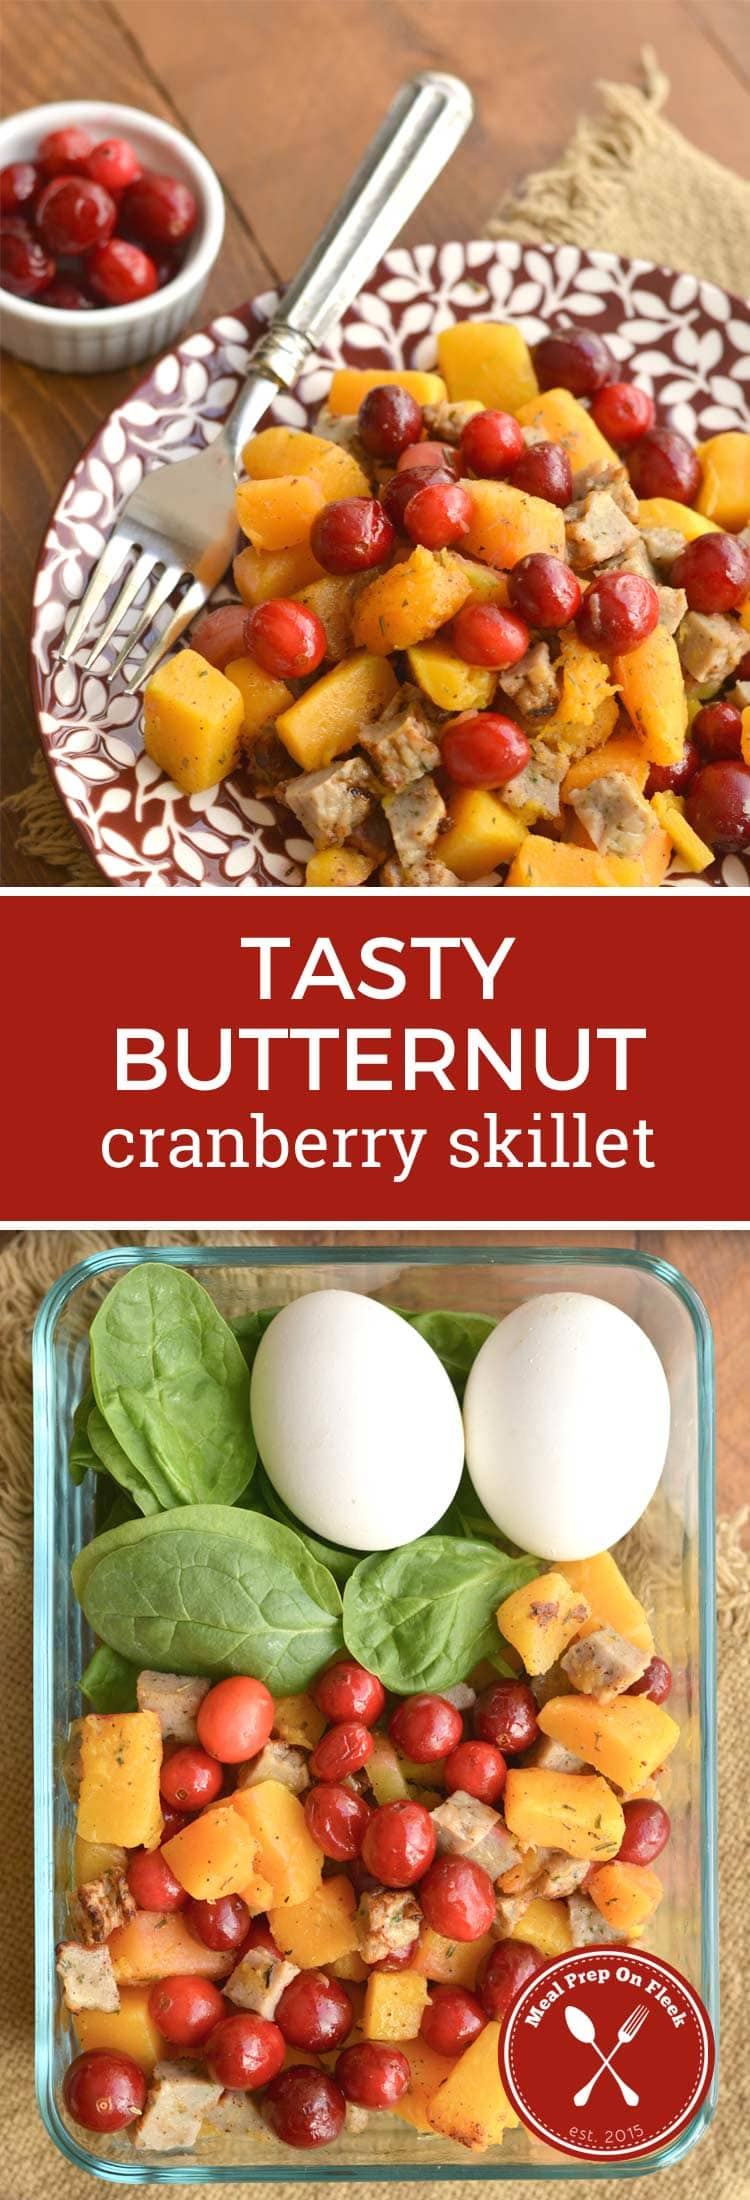 Fall Meal Prep Recipe: Butternut Squash Cranberry Skillet Meal Prep